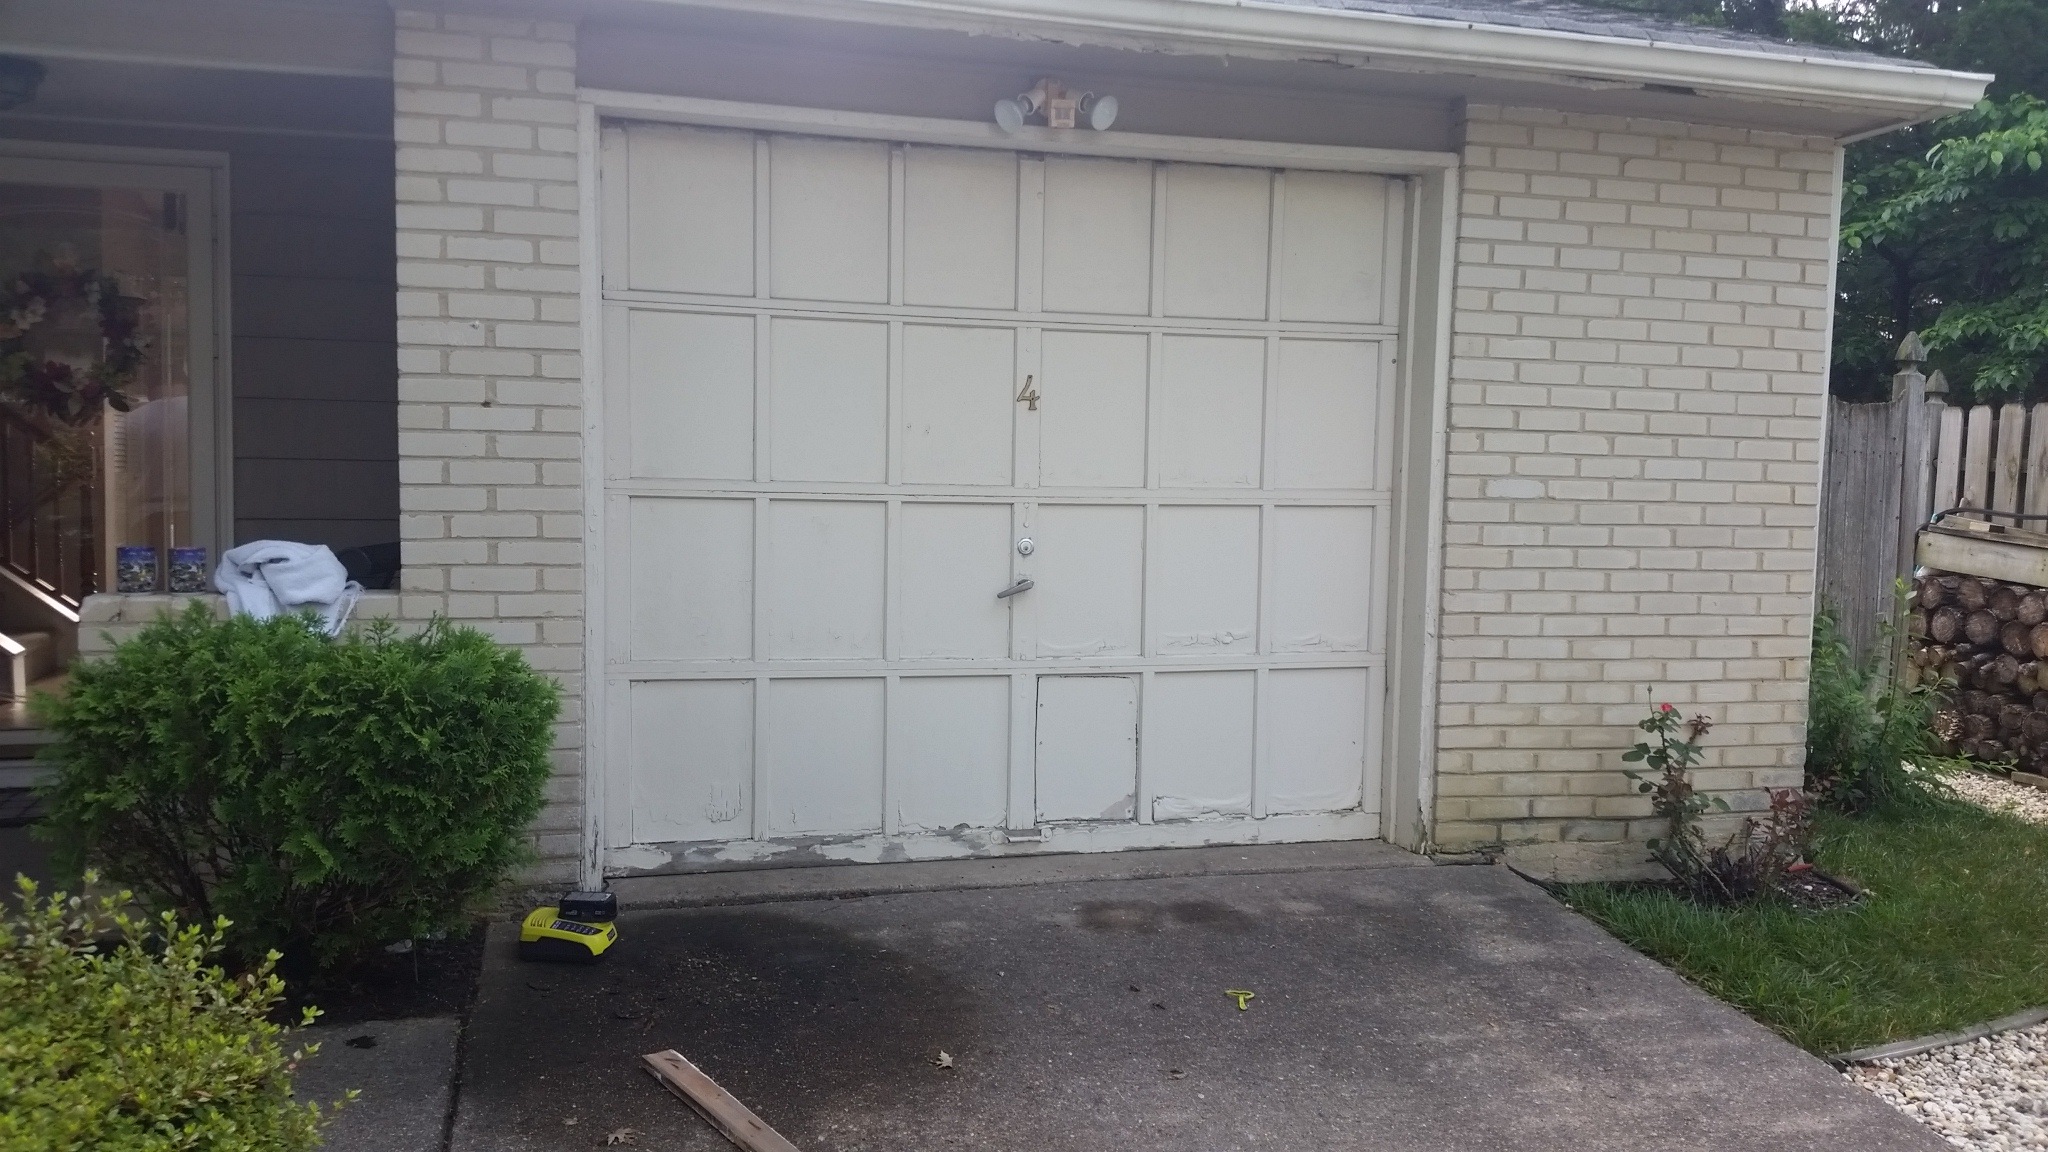 Before we installed a new clopay garage door